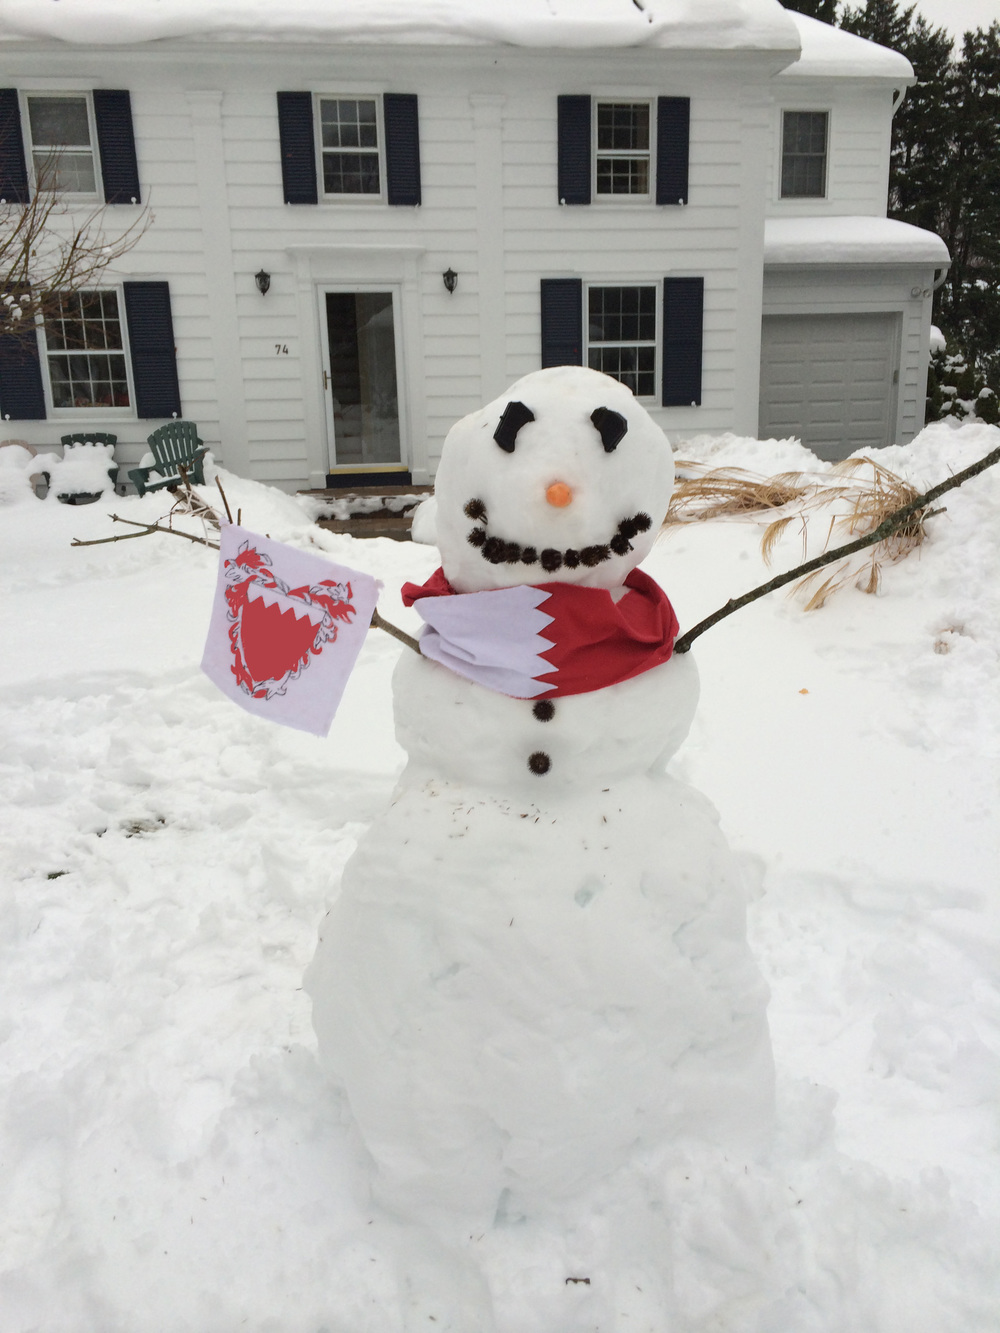 Heather makes a snowman in the United States to say hello to the people of Bahrain on Bahrain's independence day (Dec 16).